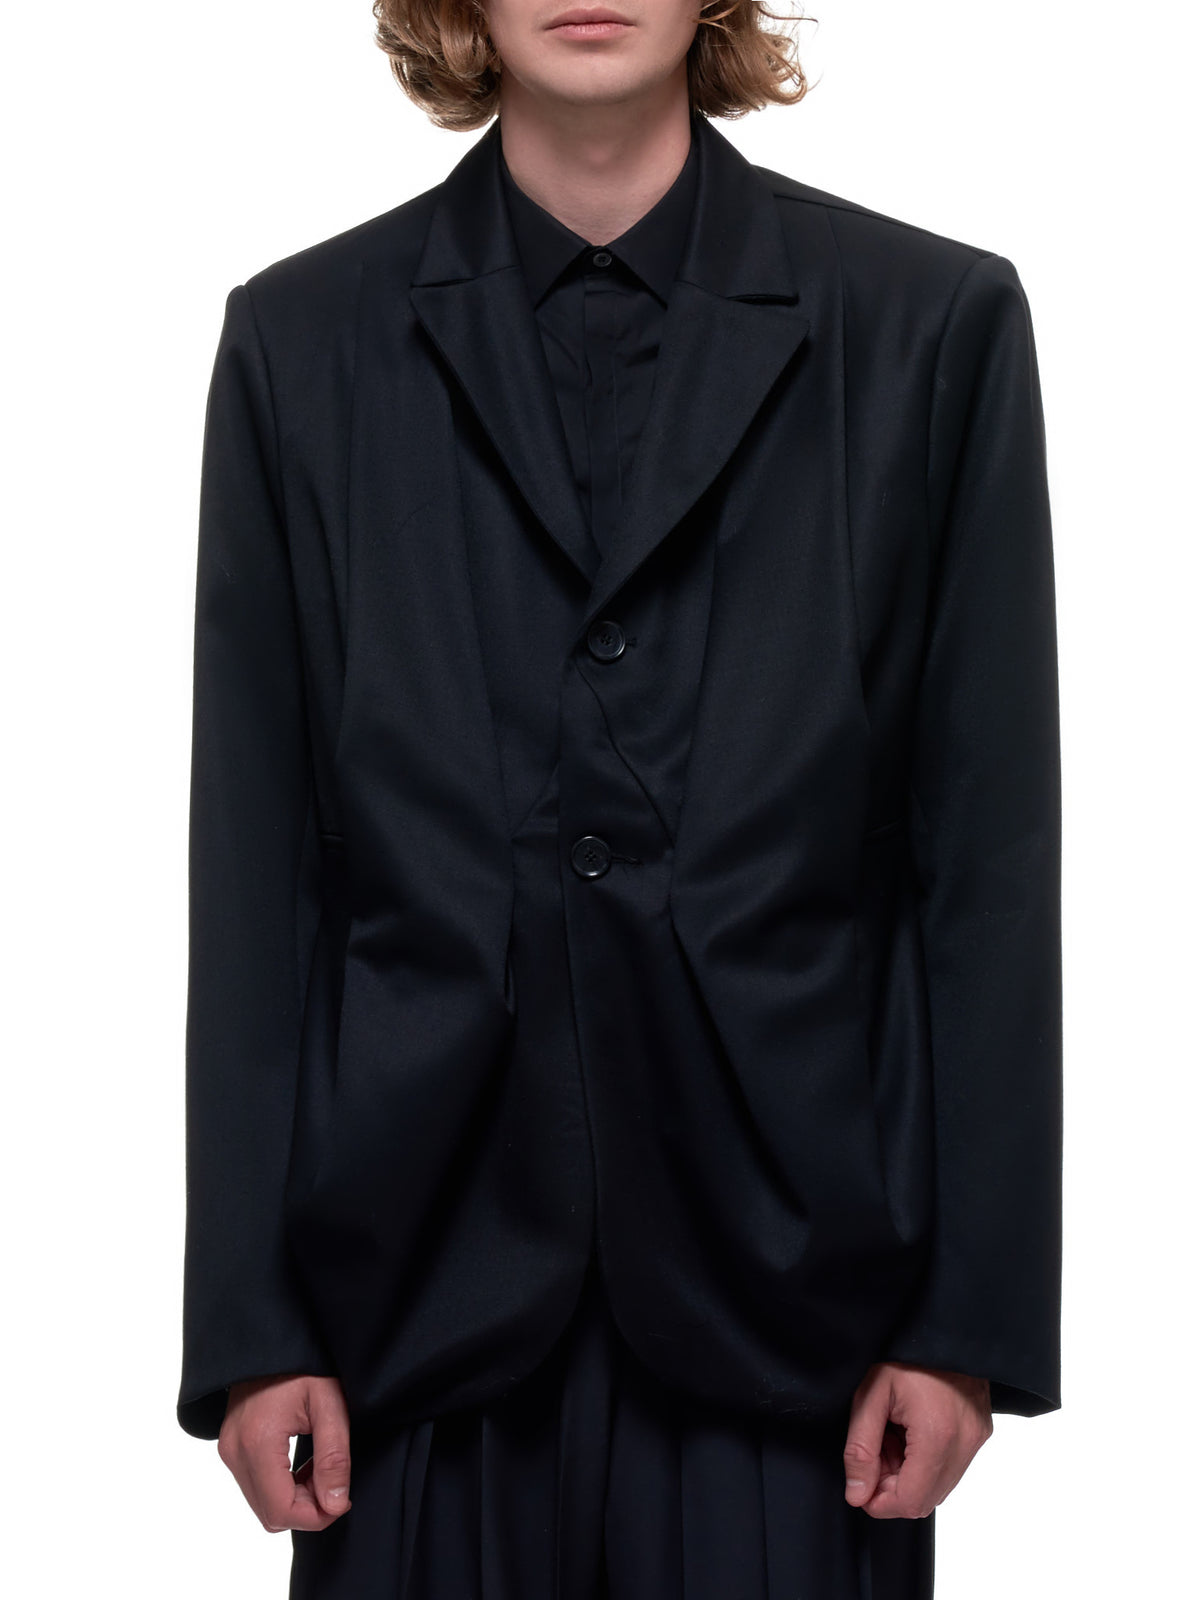 Wool Draped Jacket (LEERY-JACKET-W-BLACK)